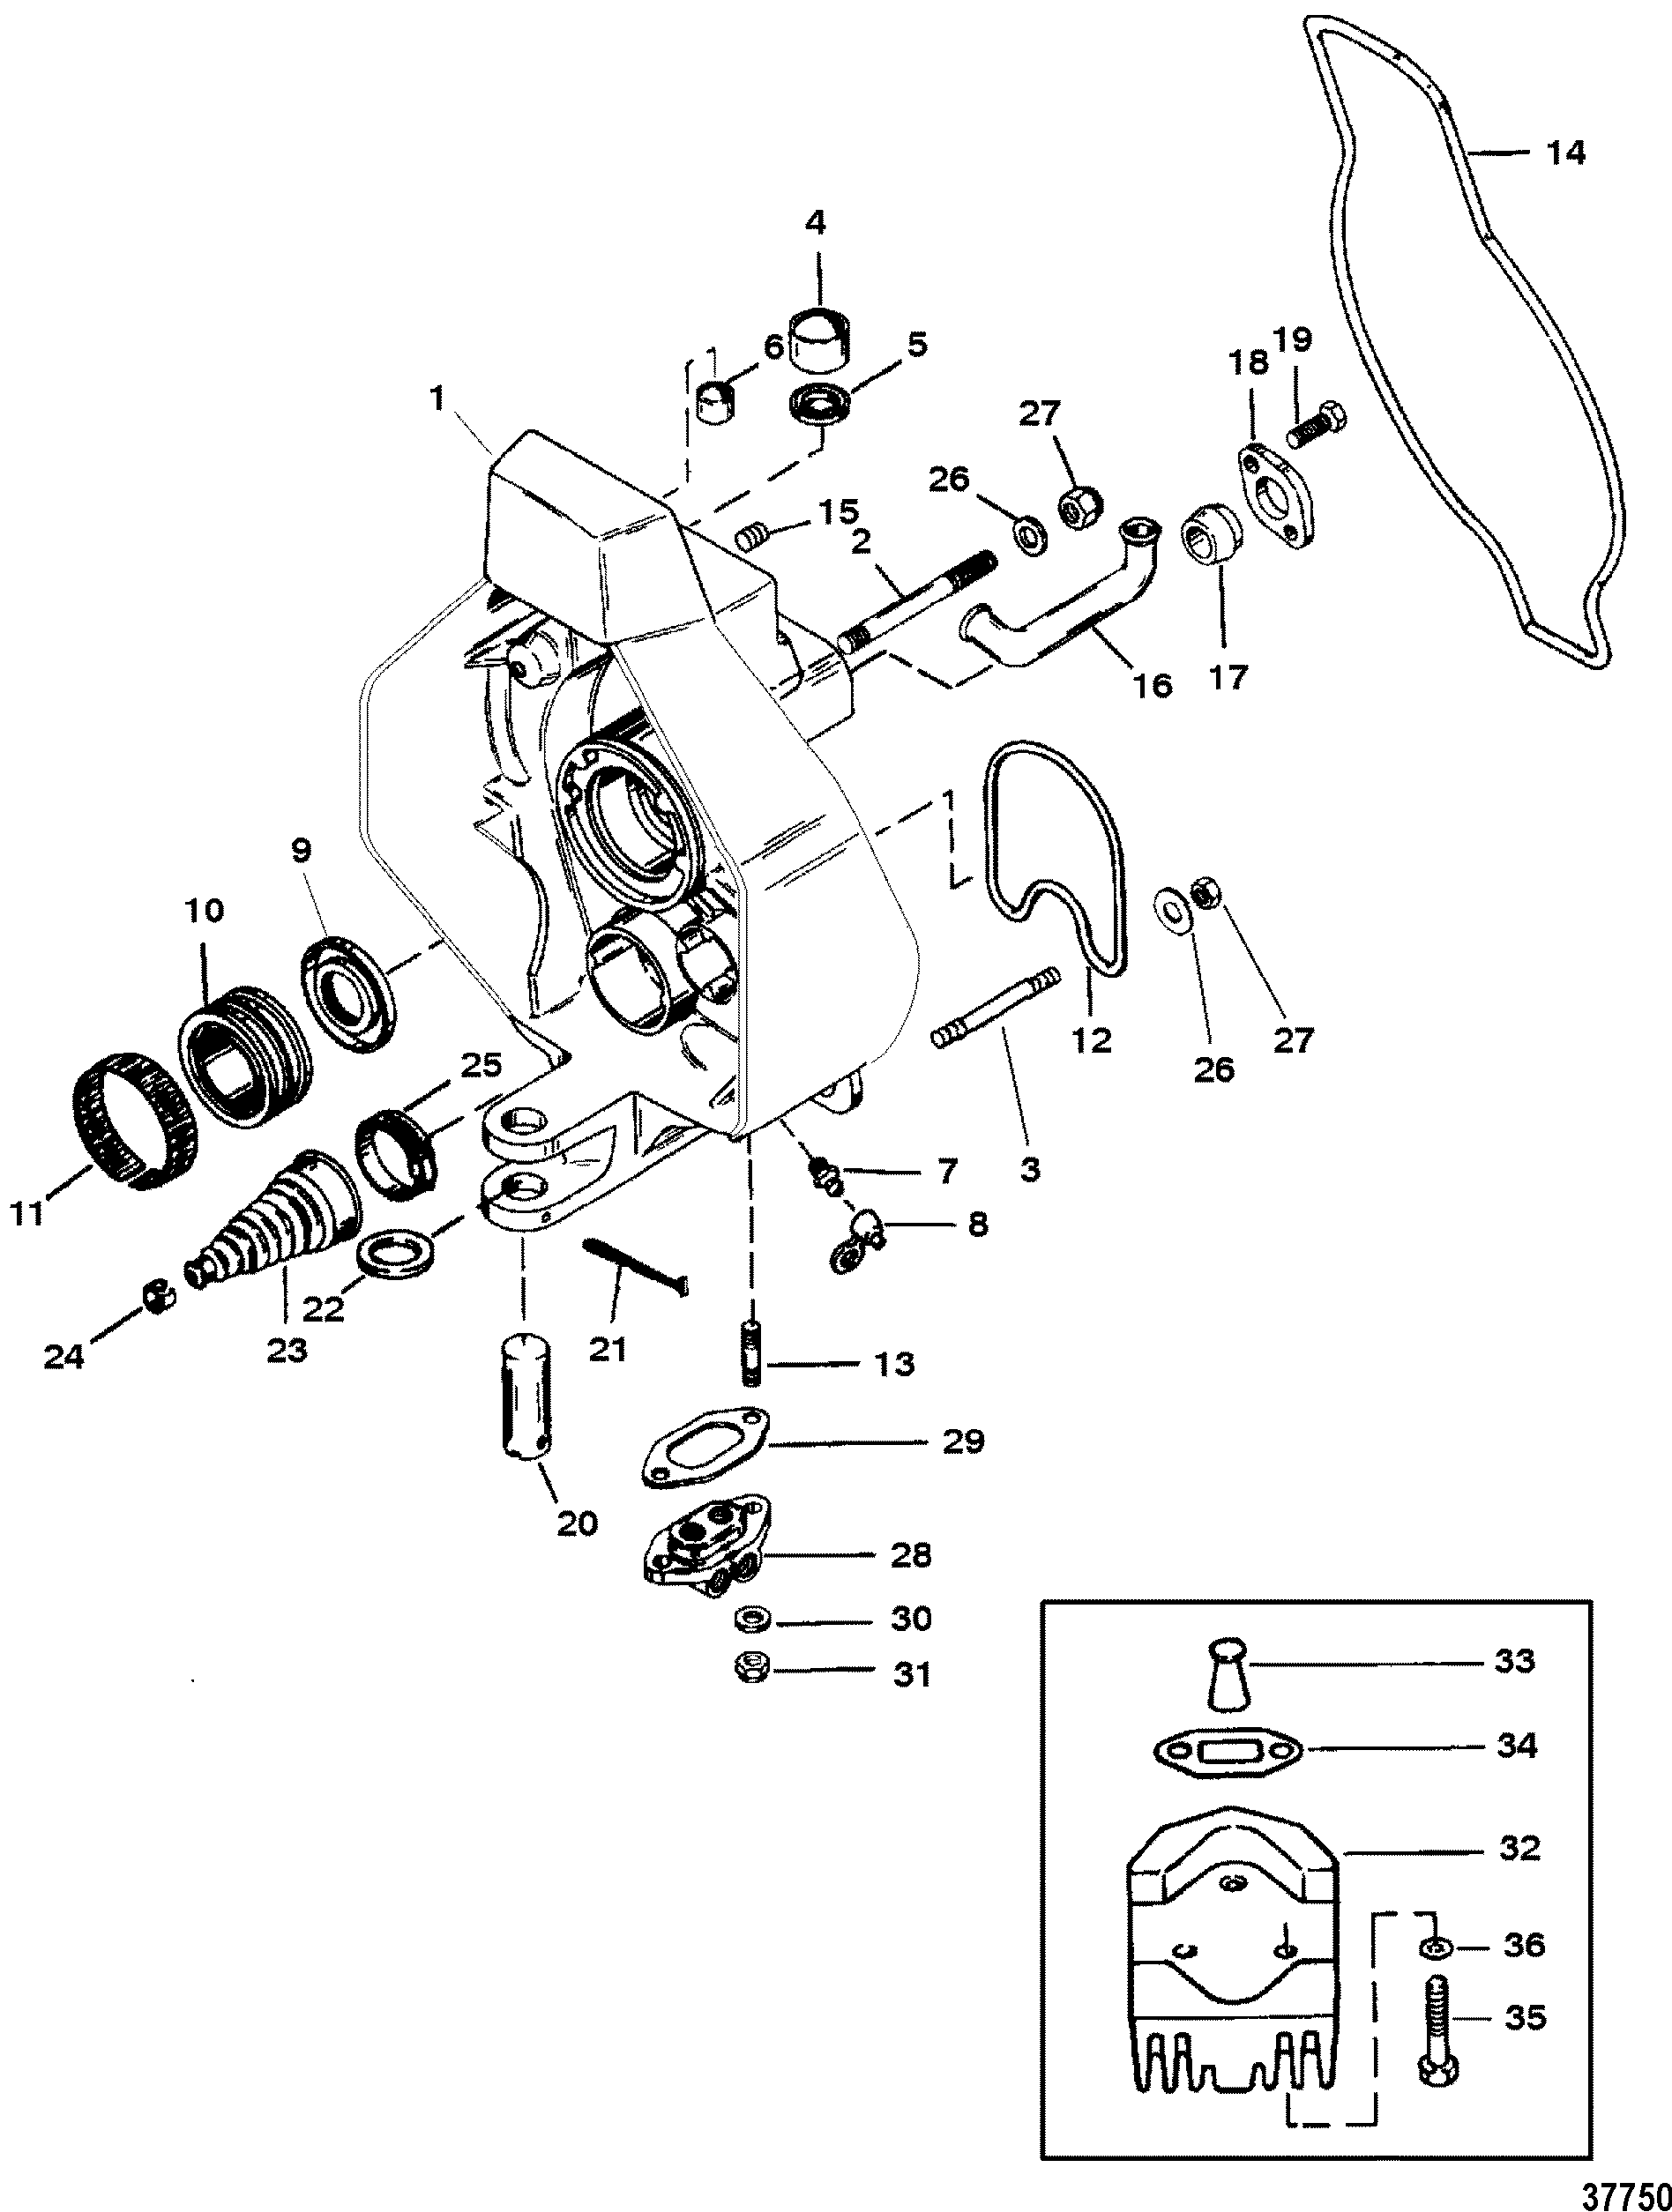 Thermostat Housing And Hoses further 140 Mercruiser Outdrive Diagram besides Blue Giant Pallet Jack Parts together with Single Point Manual Drain System Mercruiser 4 3l Marine Engine Alpha Sterndrive likewise 80. on mercruiser alpha drive